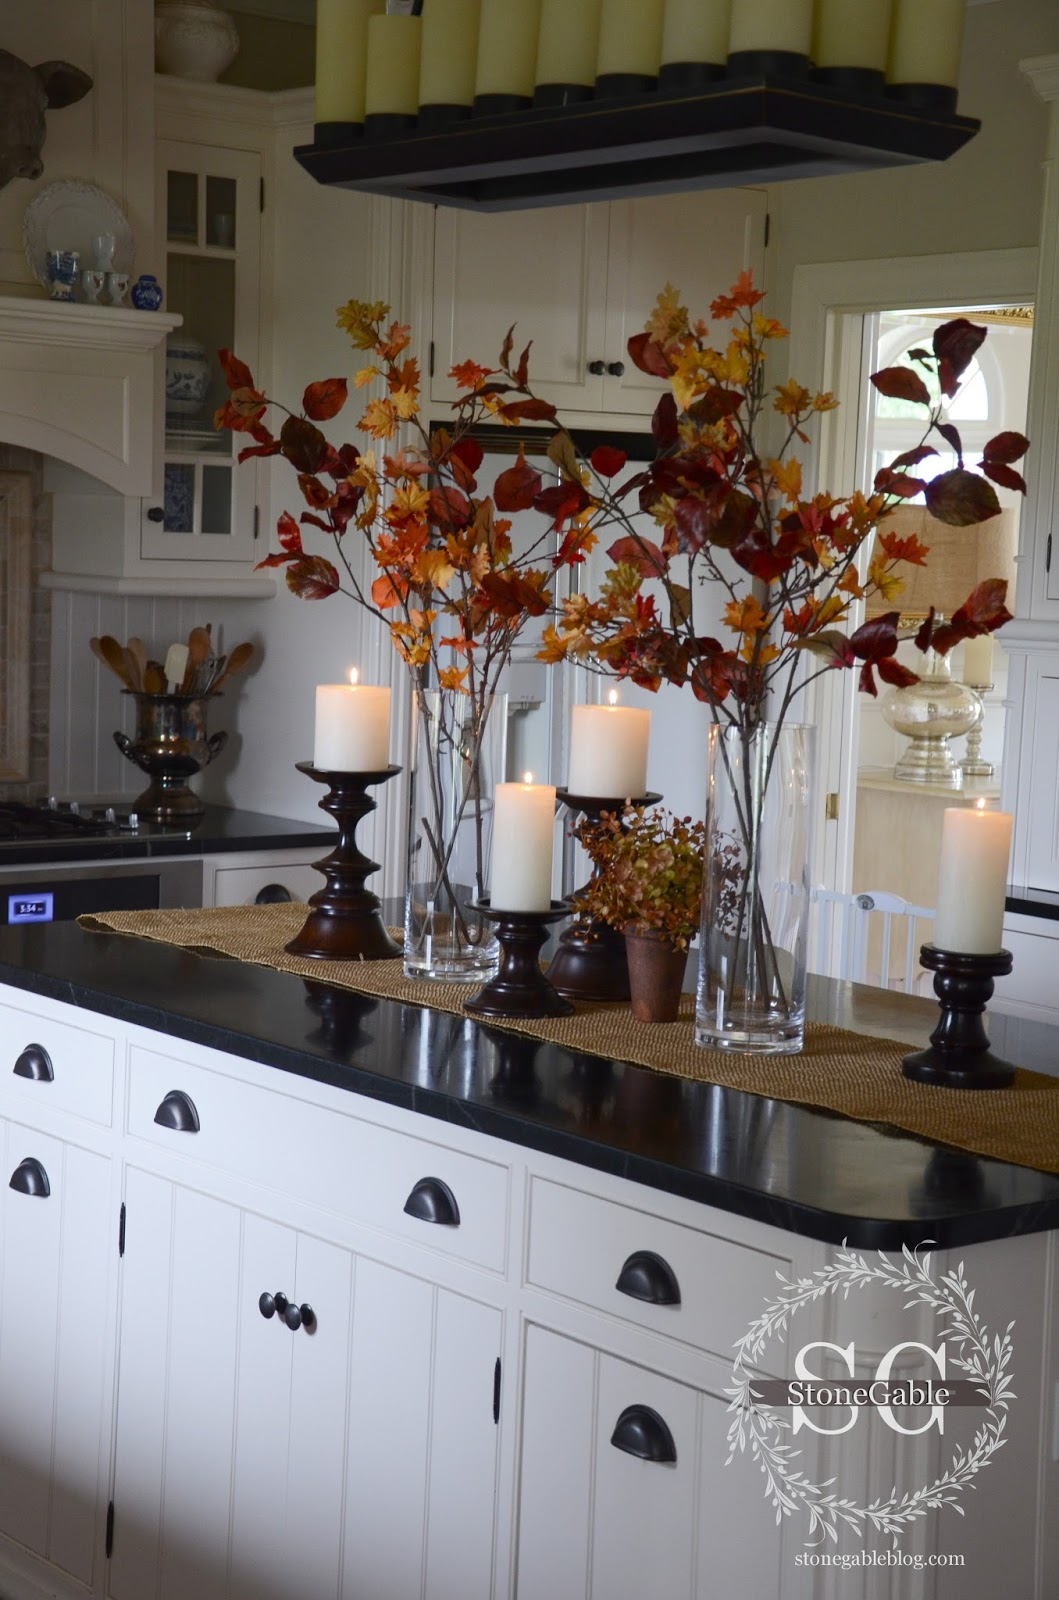 decorating kitchen islands all about the details kitchen home tour stonegable 11347